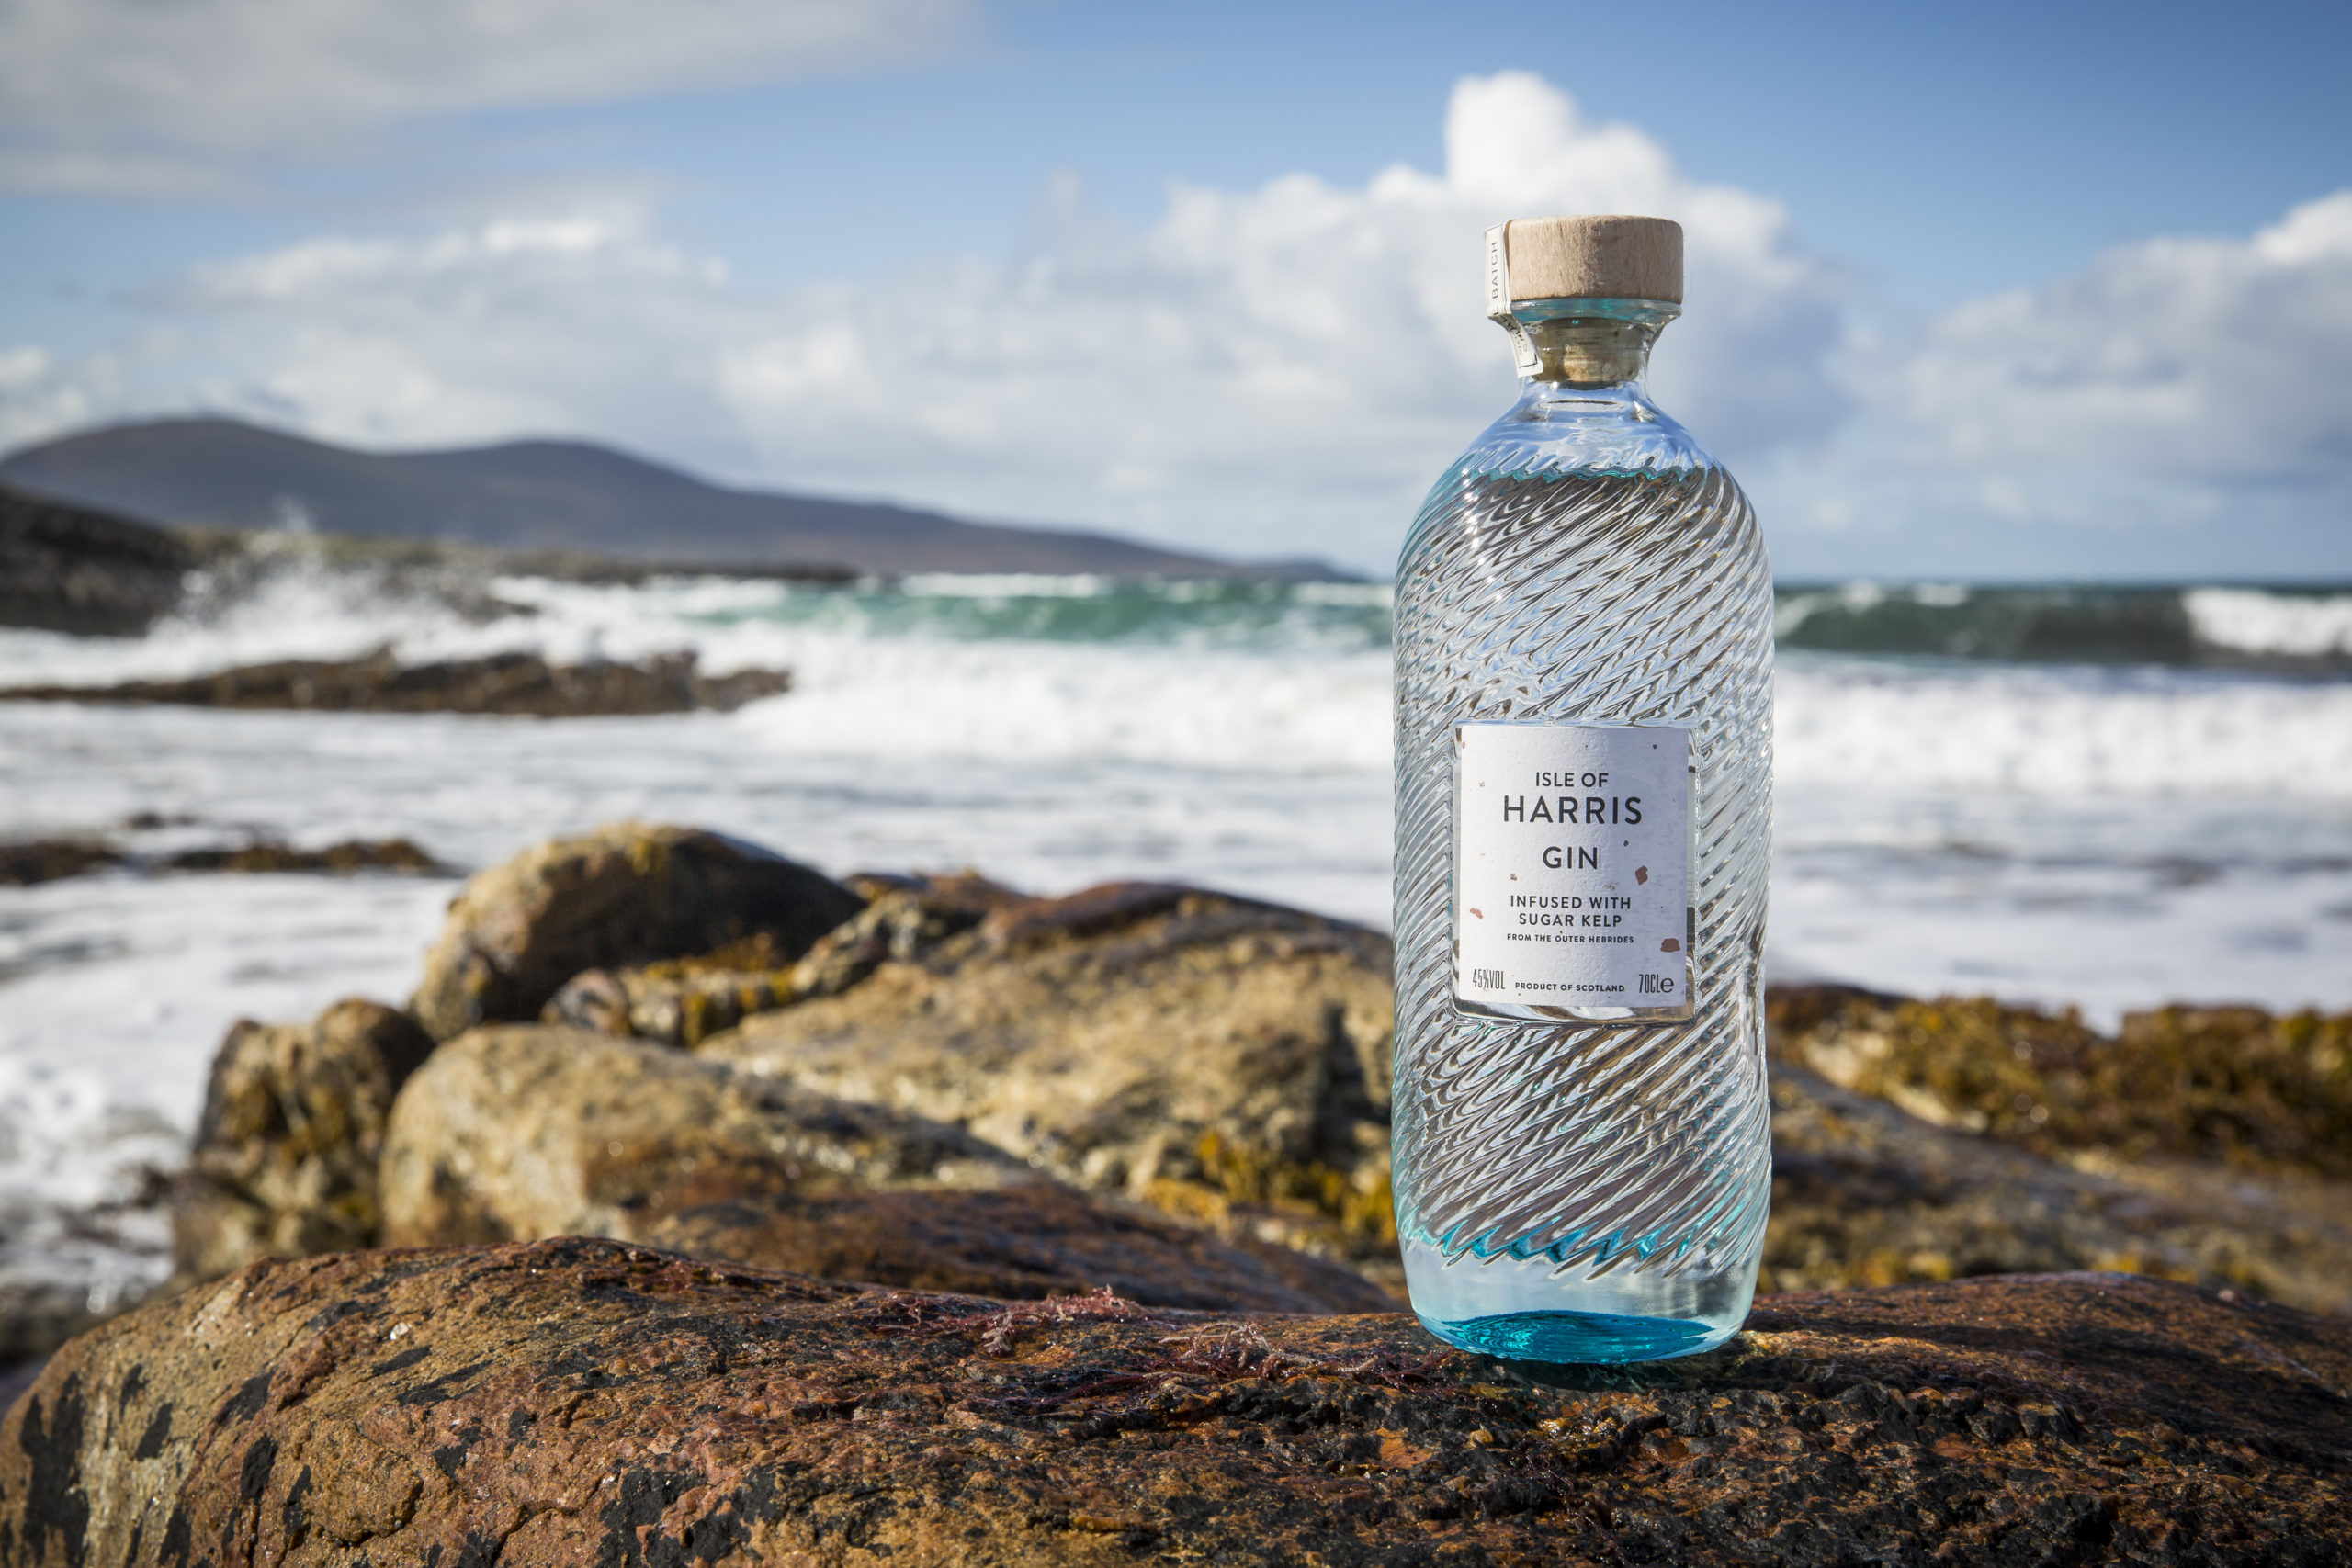 Isle of Harris gin.